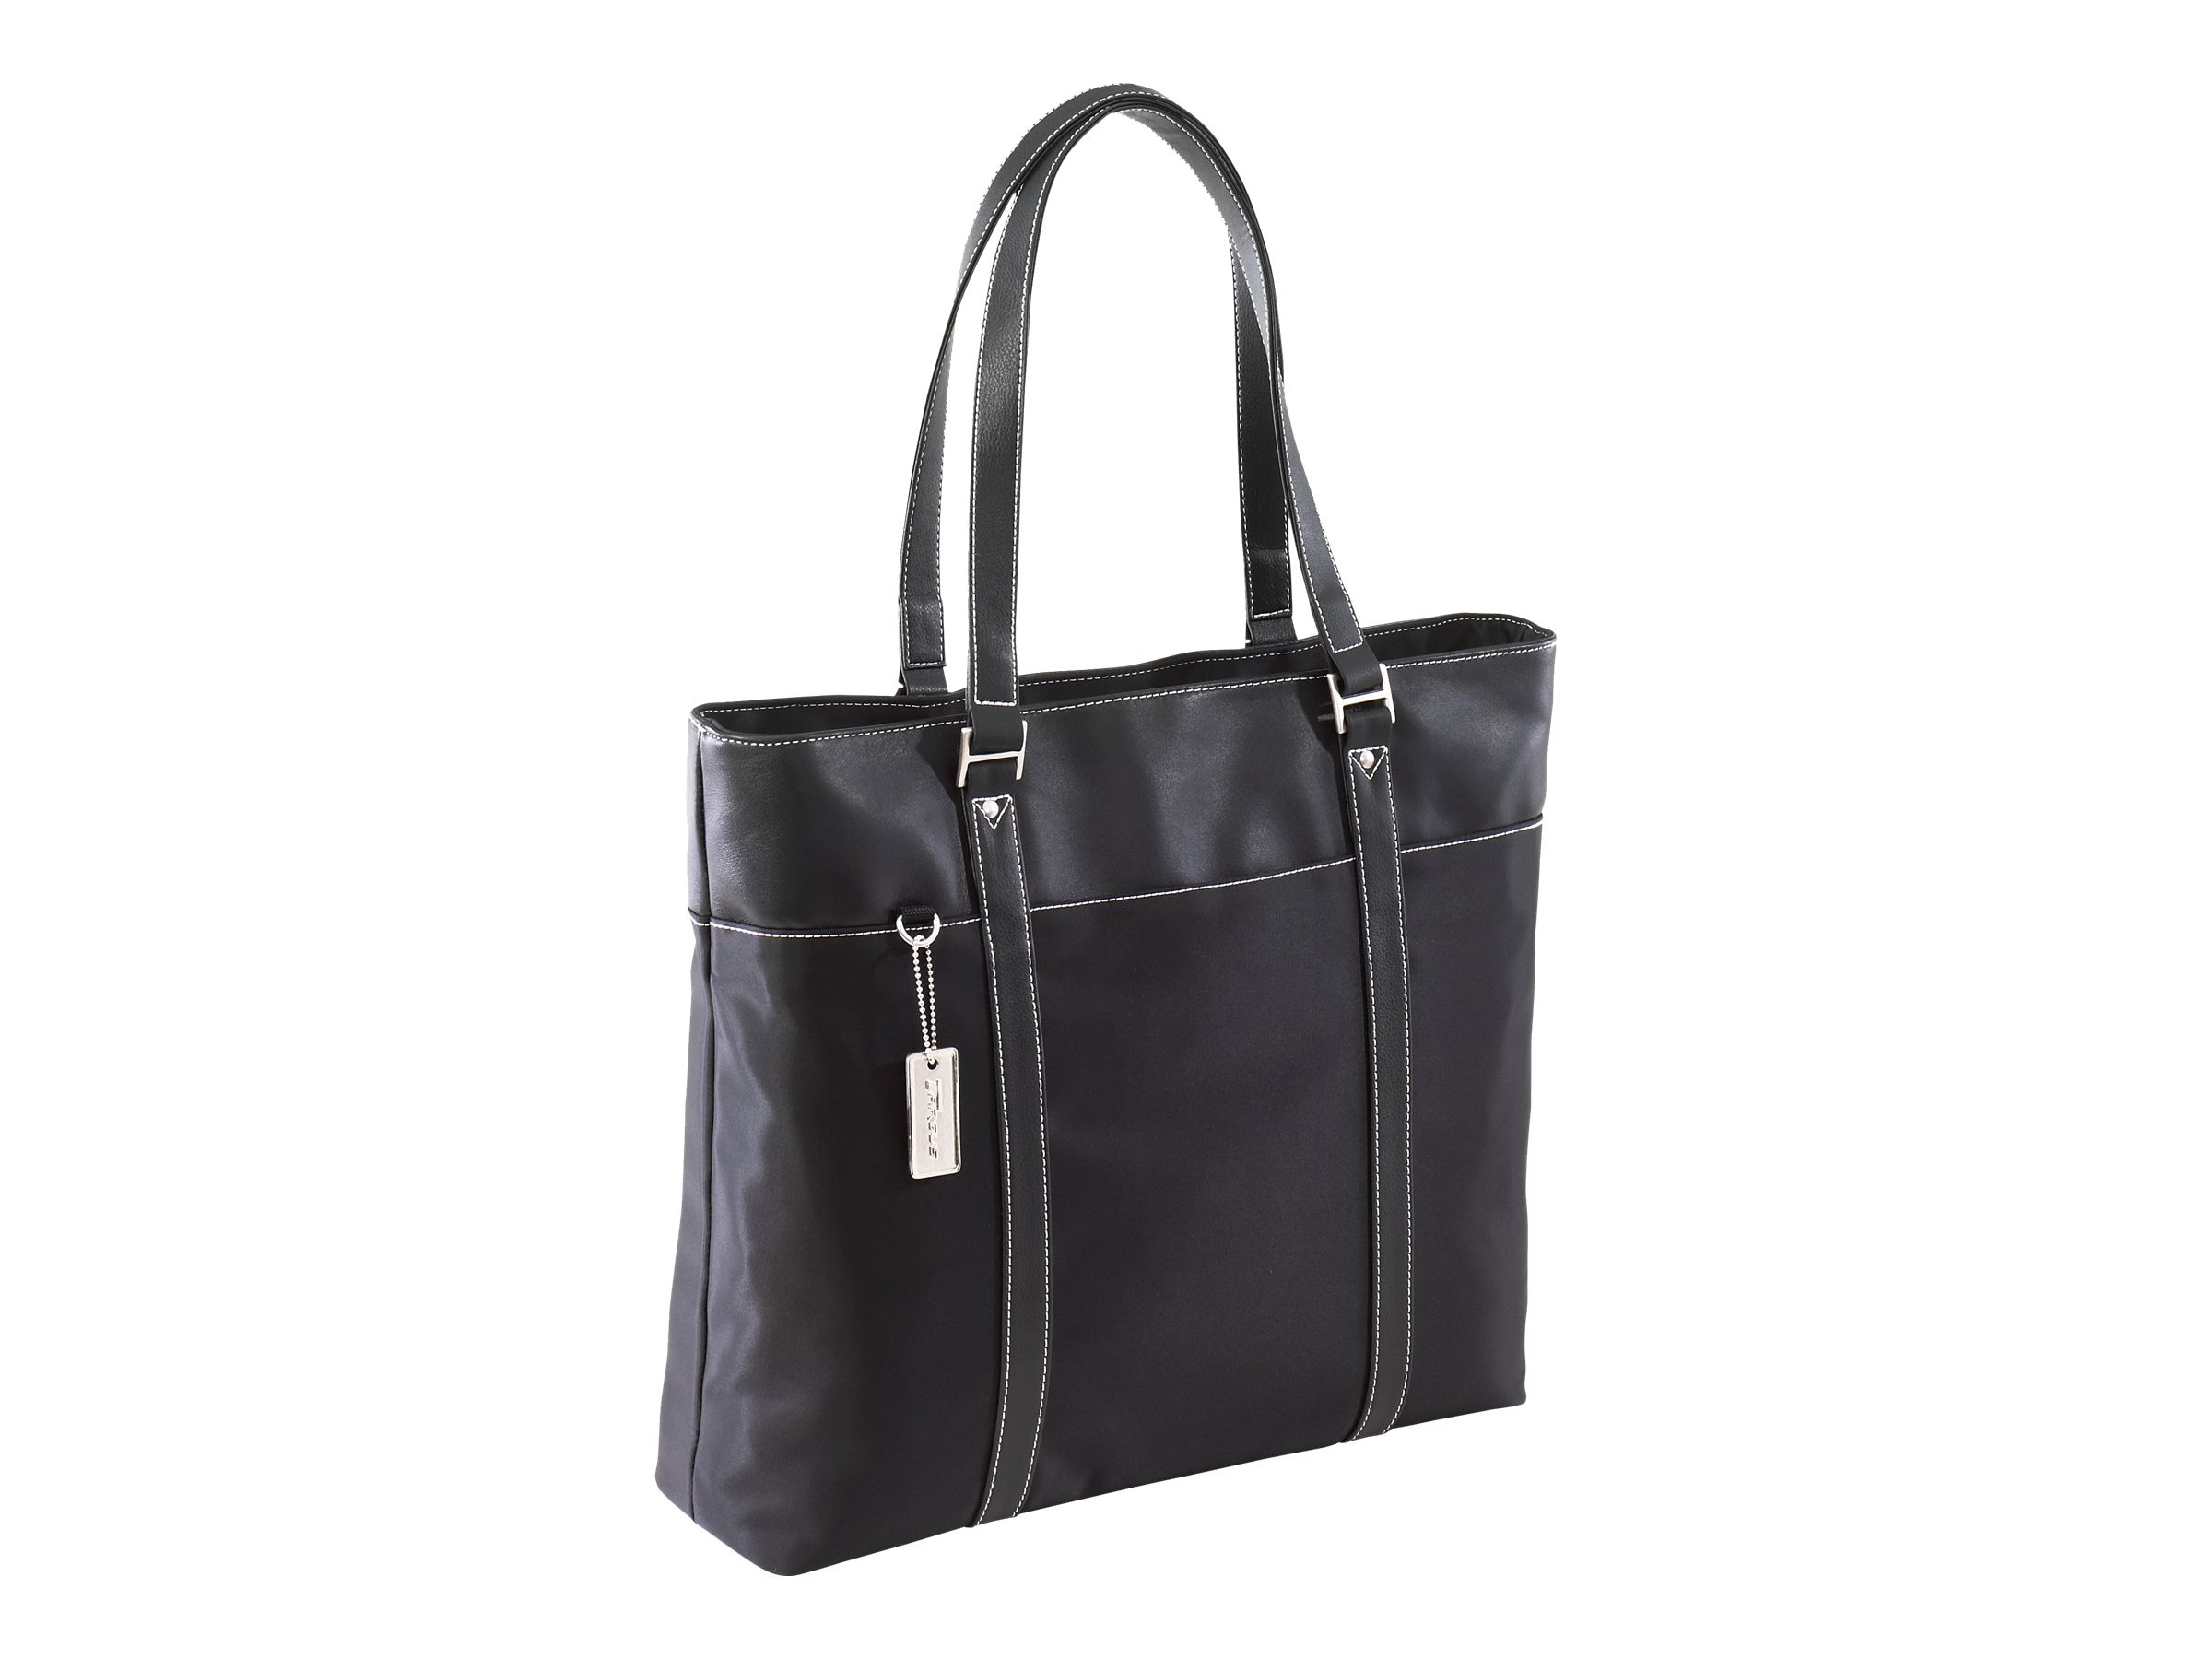 Targus Ladies Nylon Twill Deluxe Tote, 15.4 Notebook, Black, TLT004, 5540604, Carrying Cases - Notebook